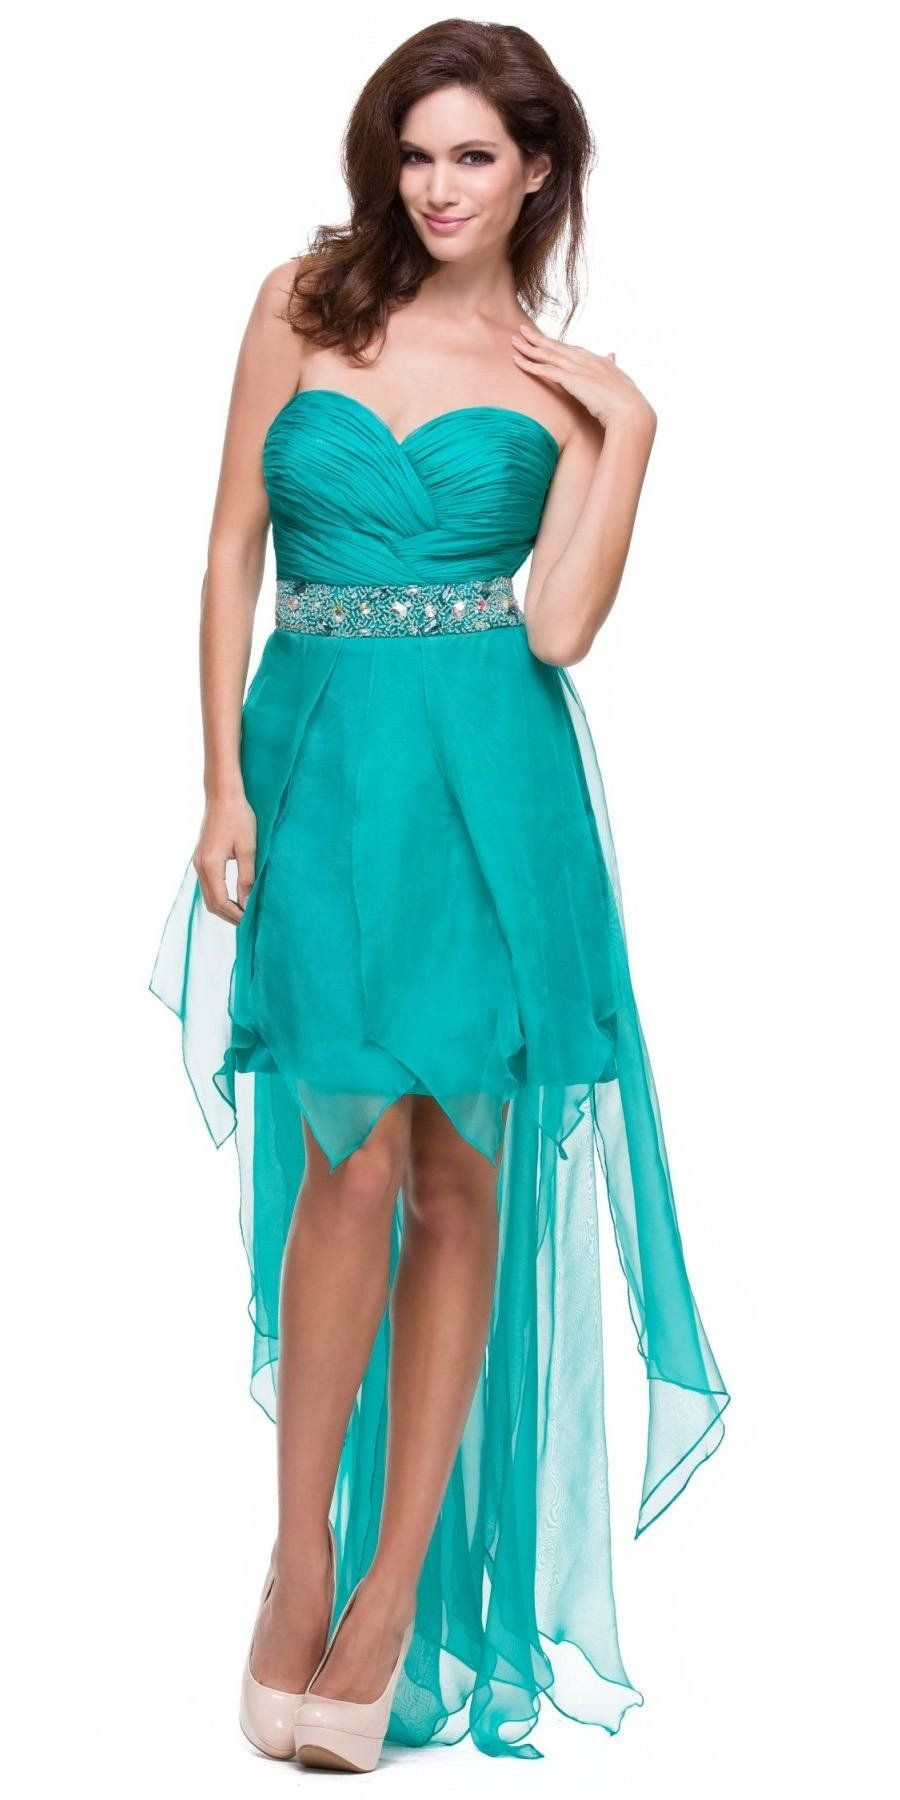 Green lace up dress  Fuchsia High Low Dress Prom Lace Up Back Strapless Bead Waist  Products